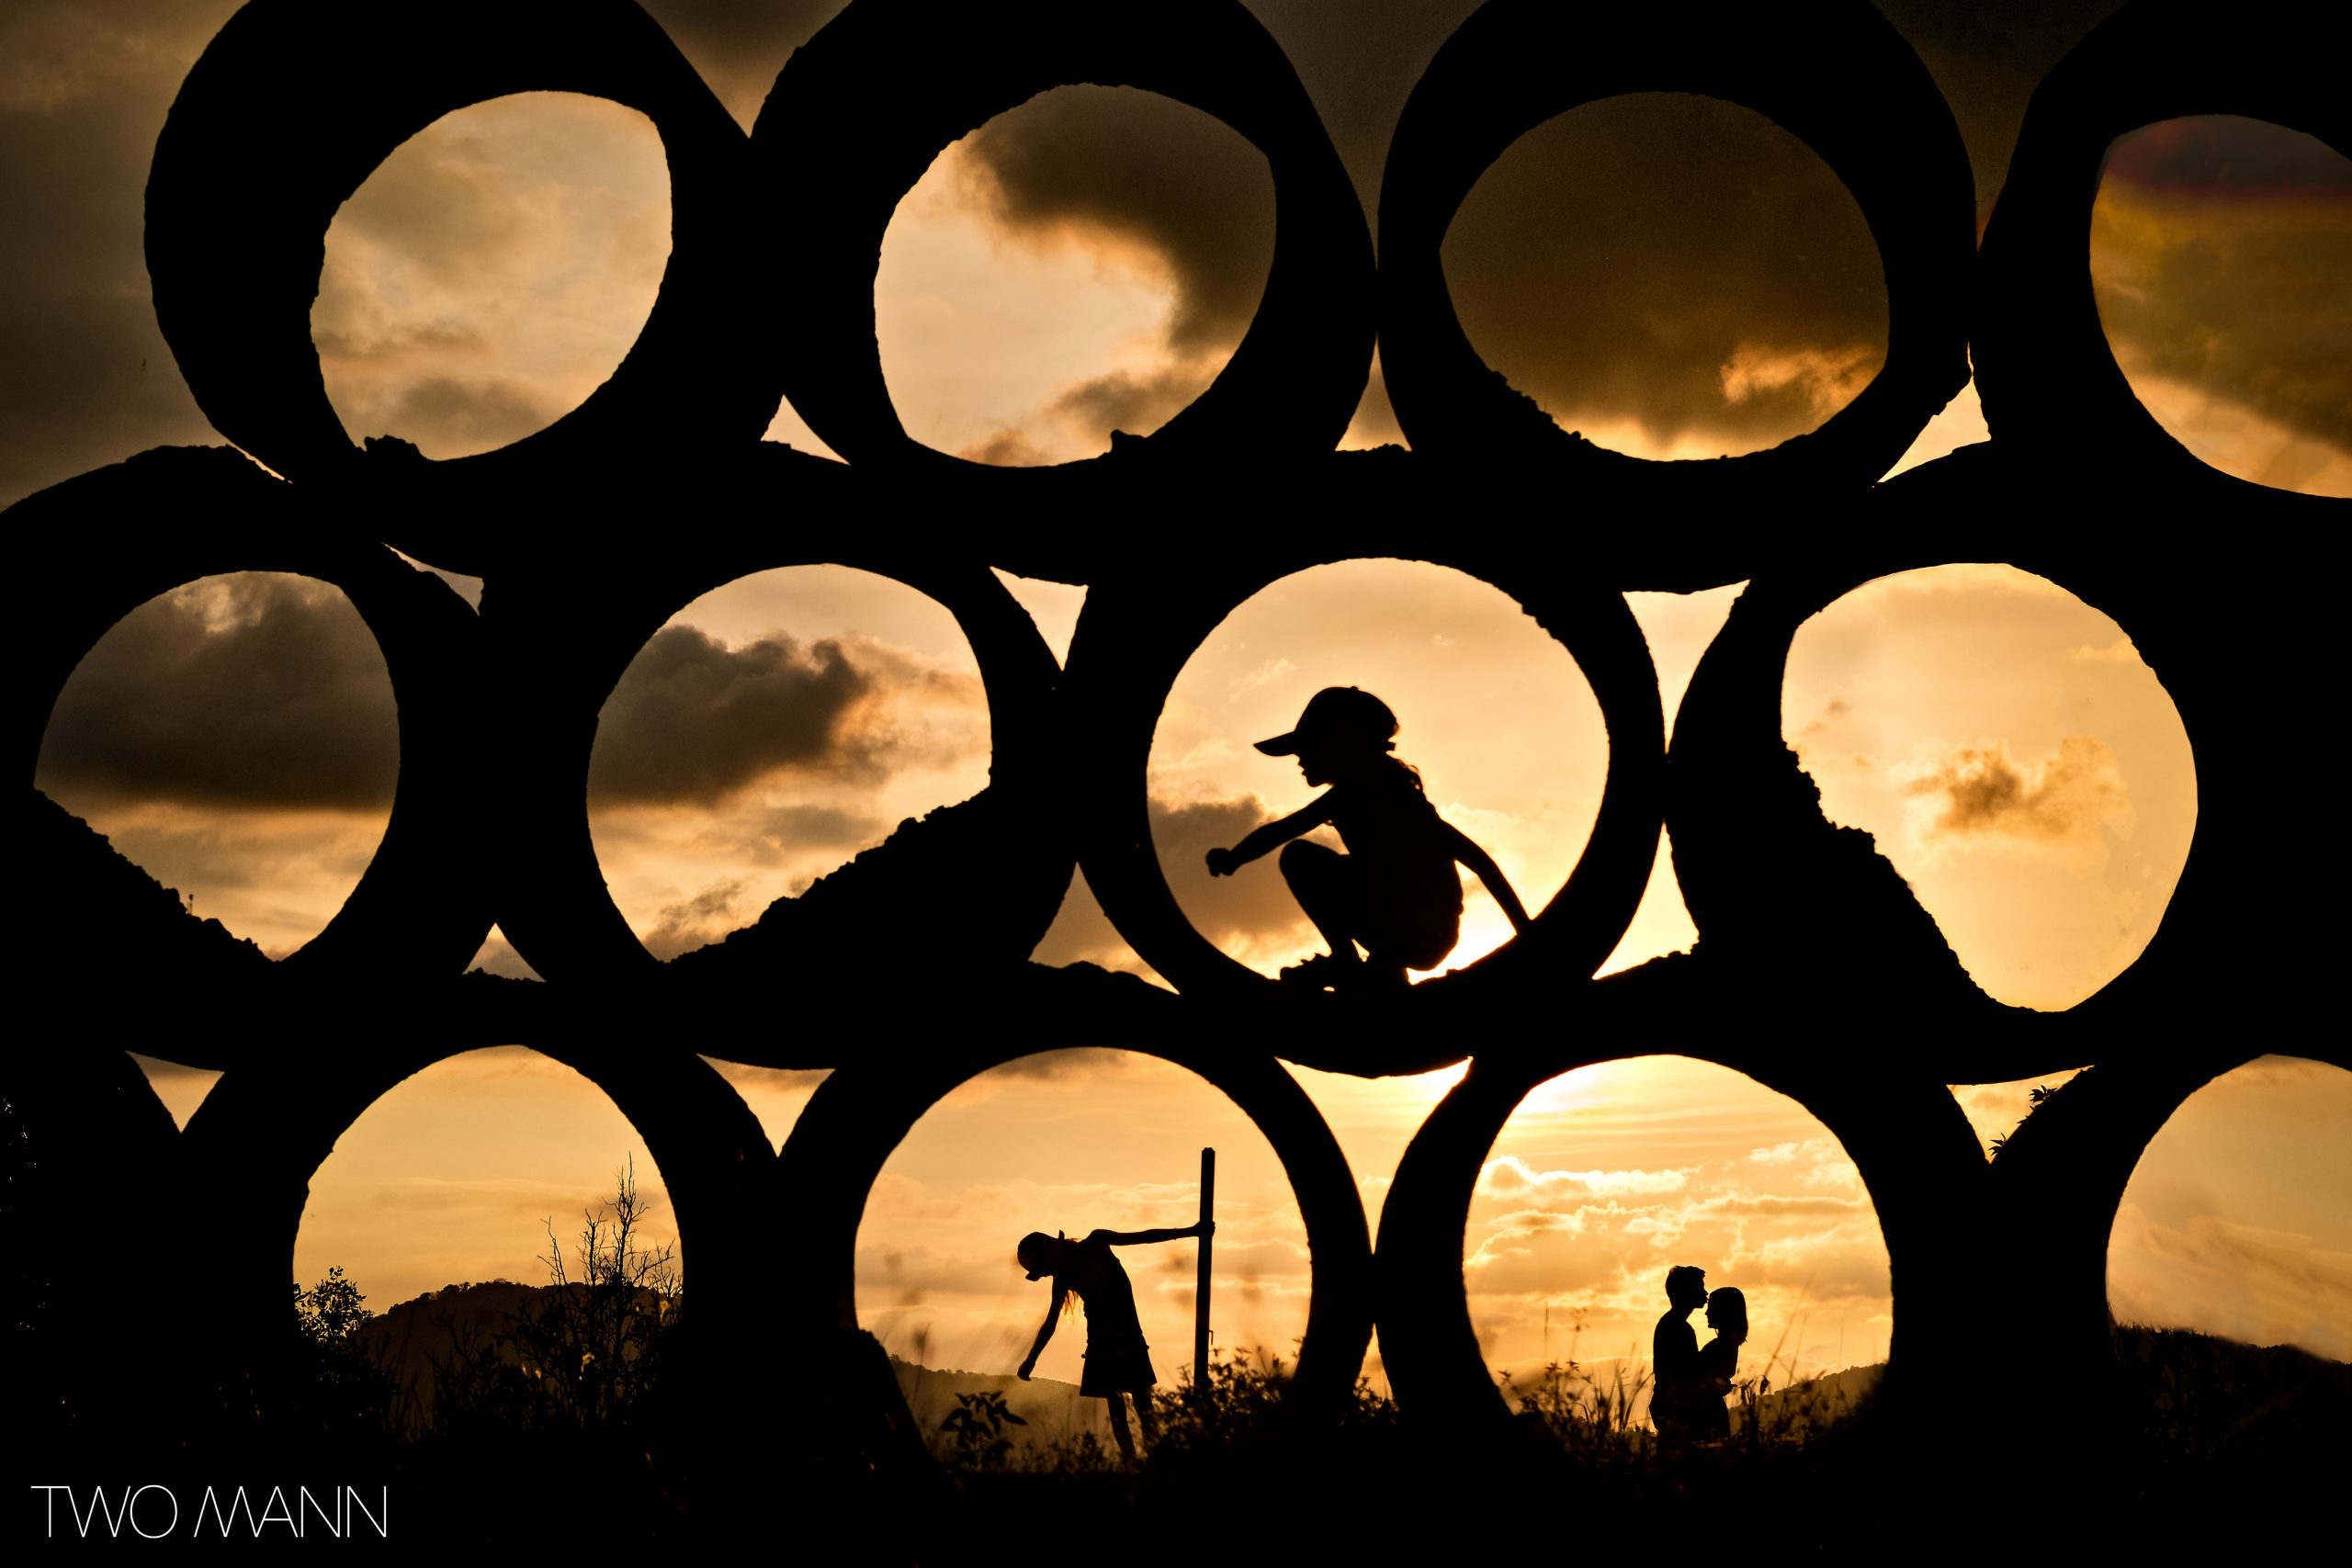 Couple in love kissing with kids playing on construction site silhouetted at sunset in Thailand.